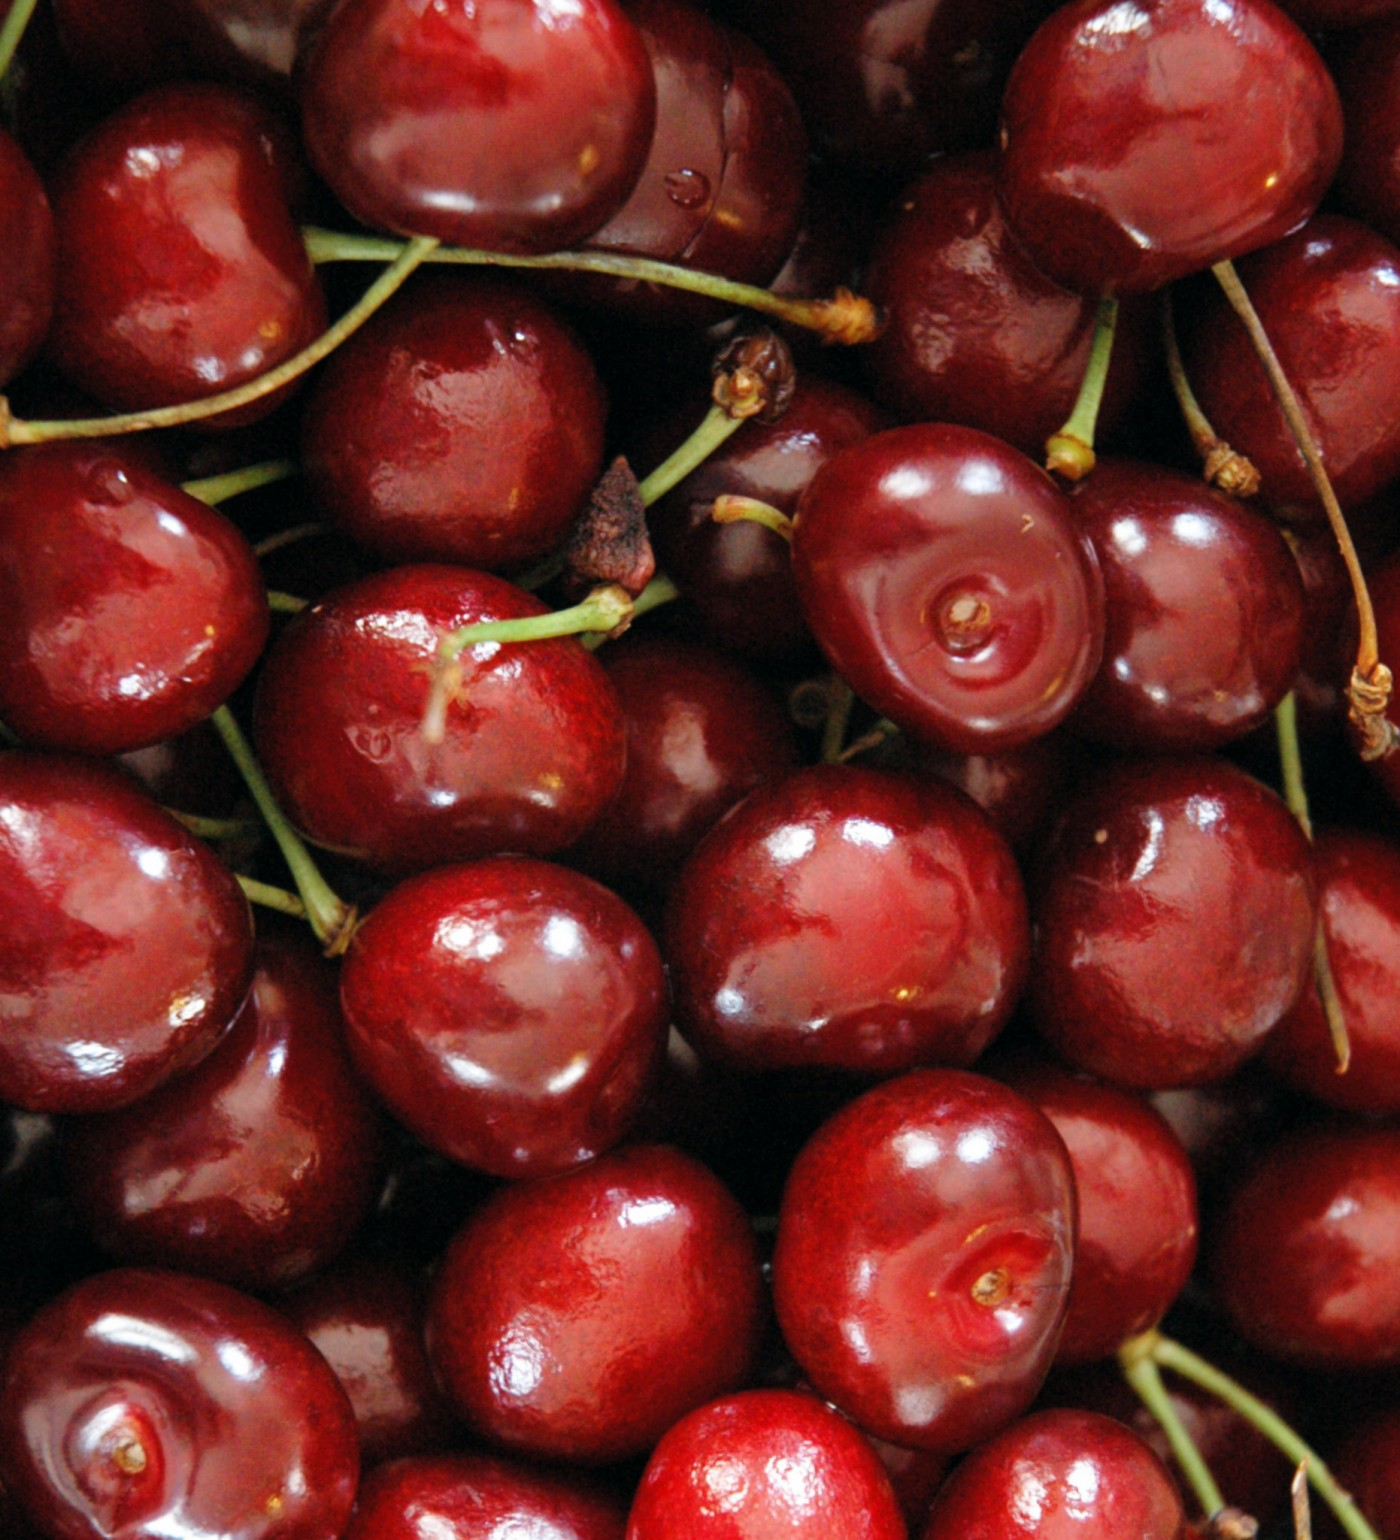 Fruit 2.5C Cherry 'Lapins'